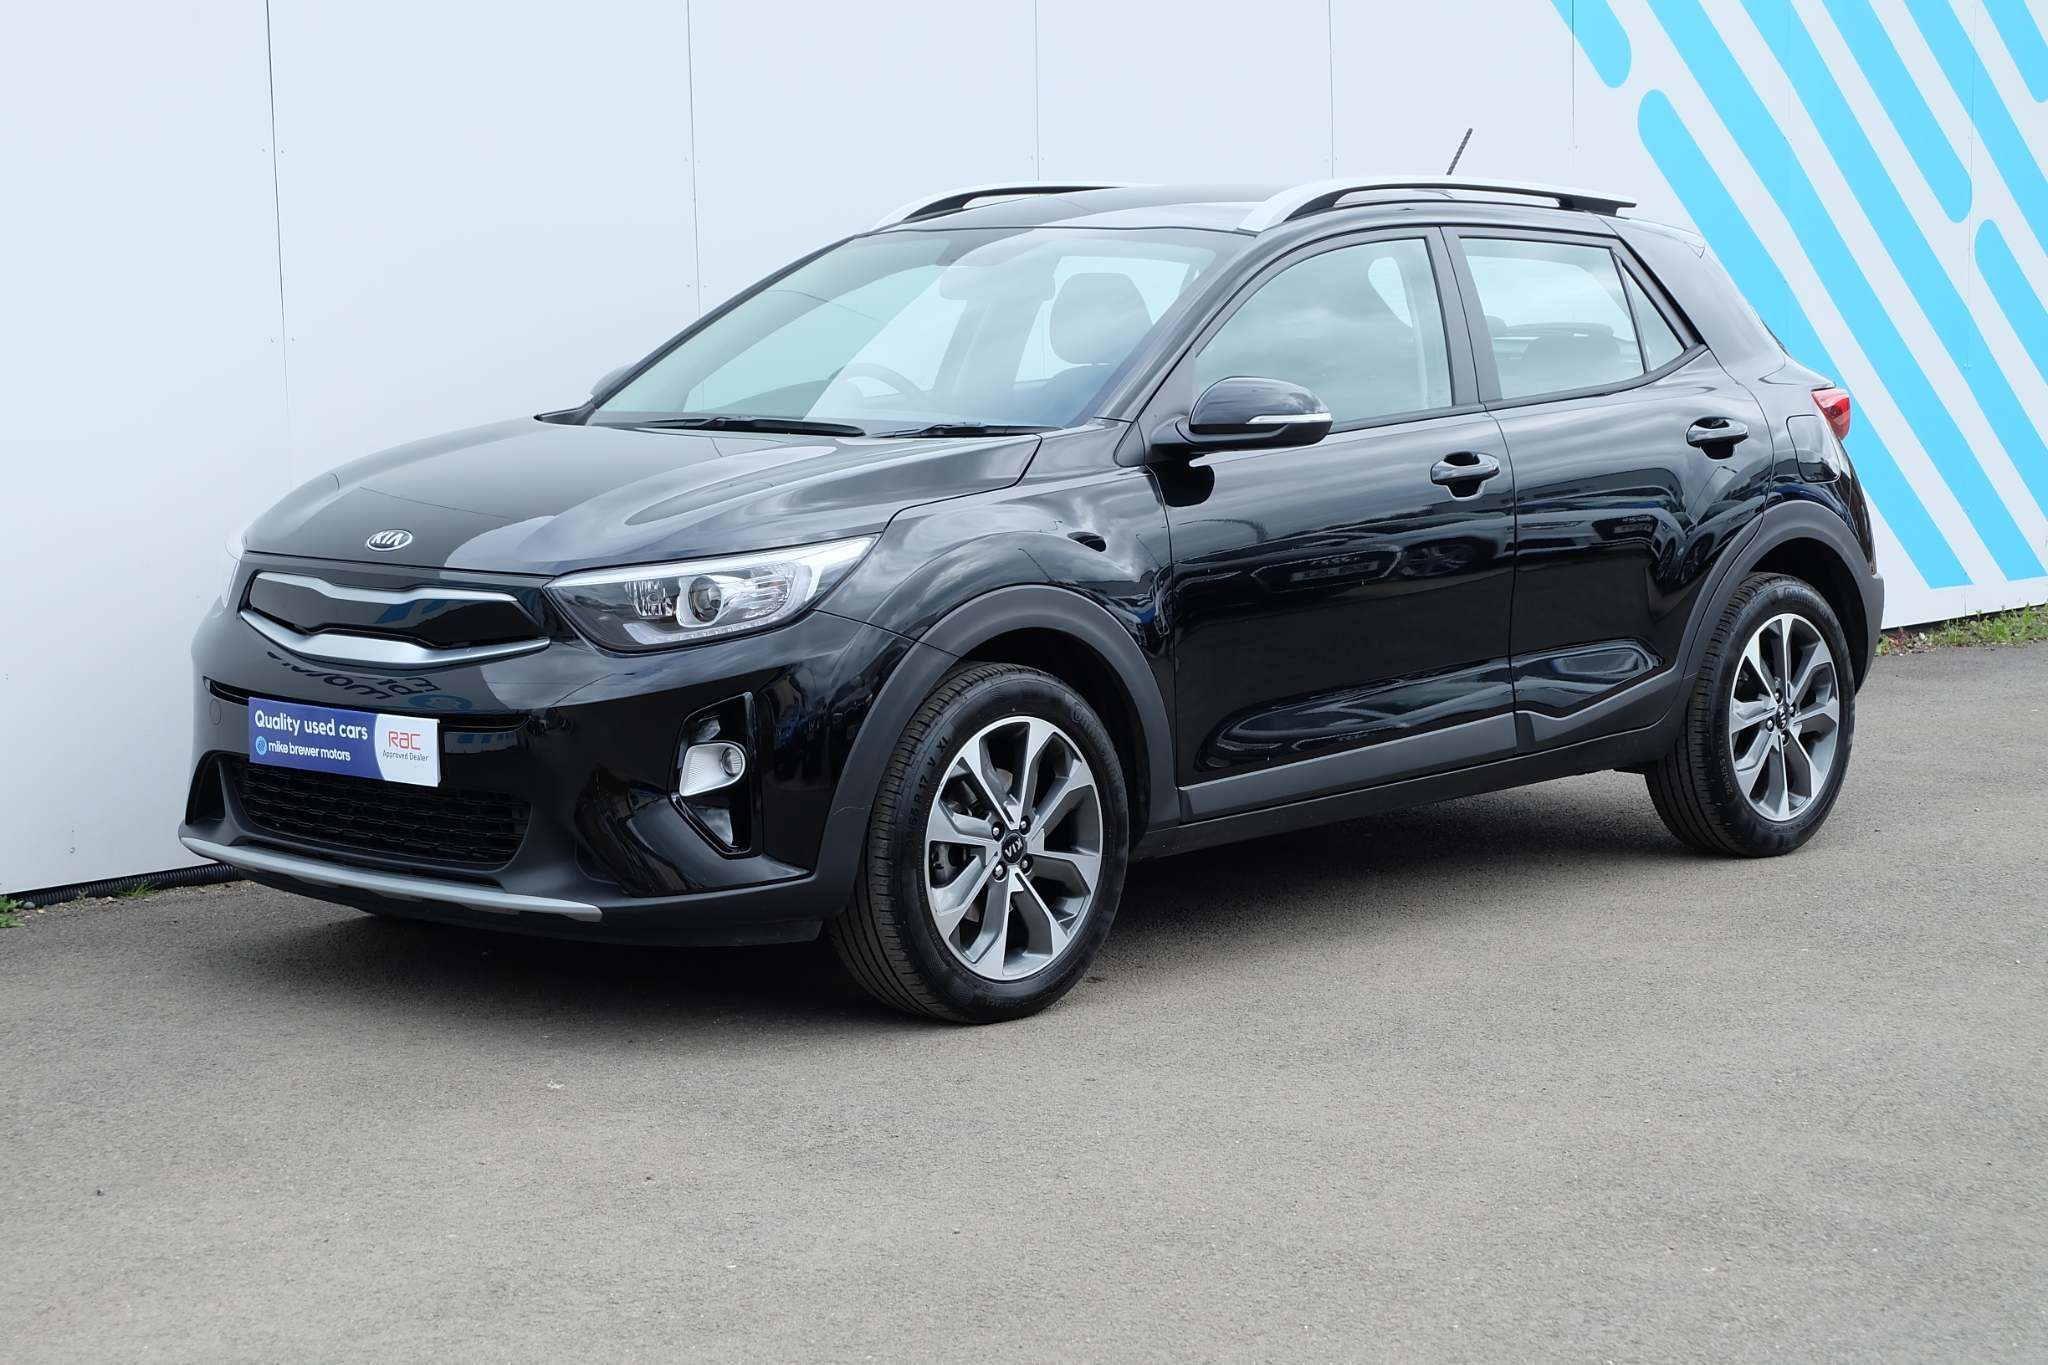 Used Kia Stonic 1.0 T-Gdi 2 (s/s) 5dr